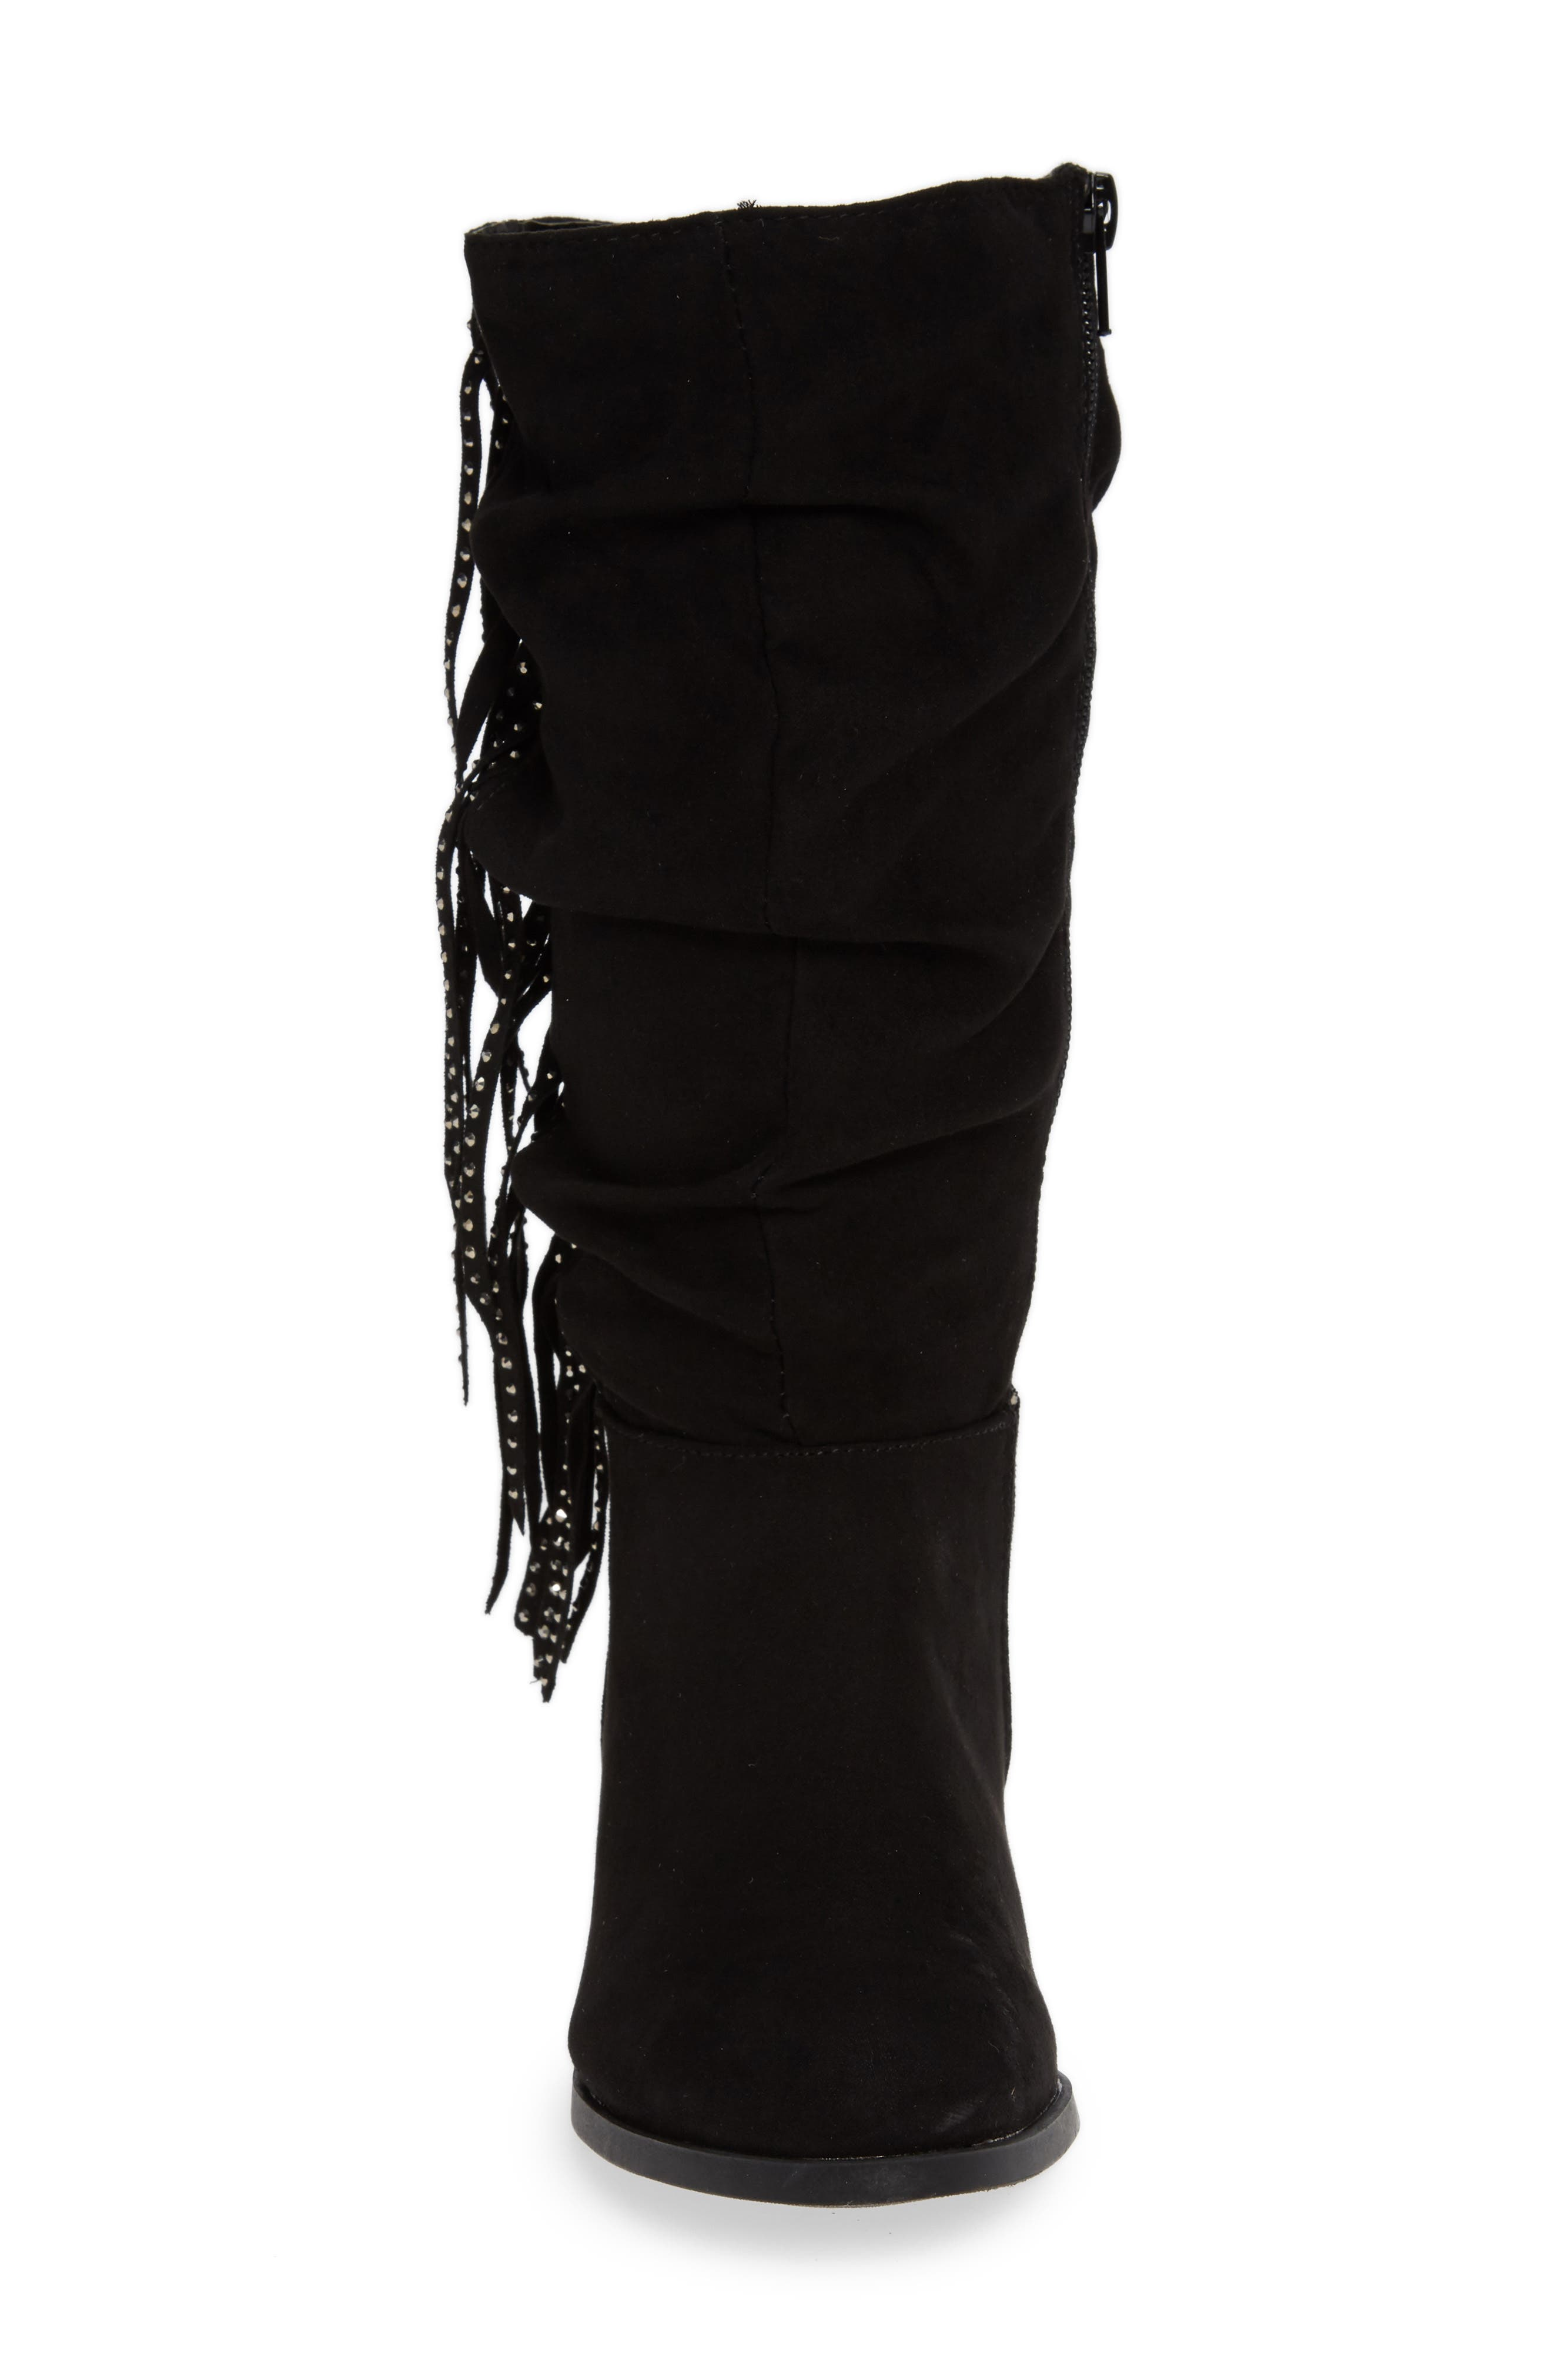 Jfringly Slouchy Fringed Boot,                             Alternate thumbnail 4, color,                             BLACK MICRO